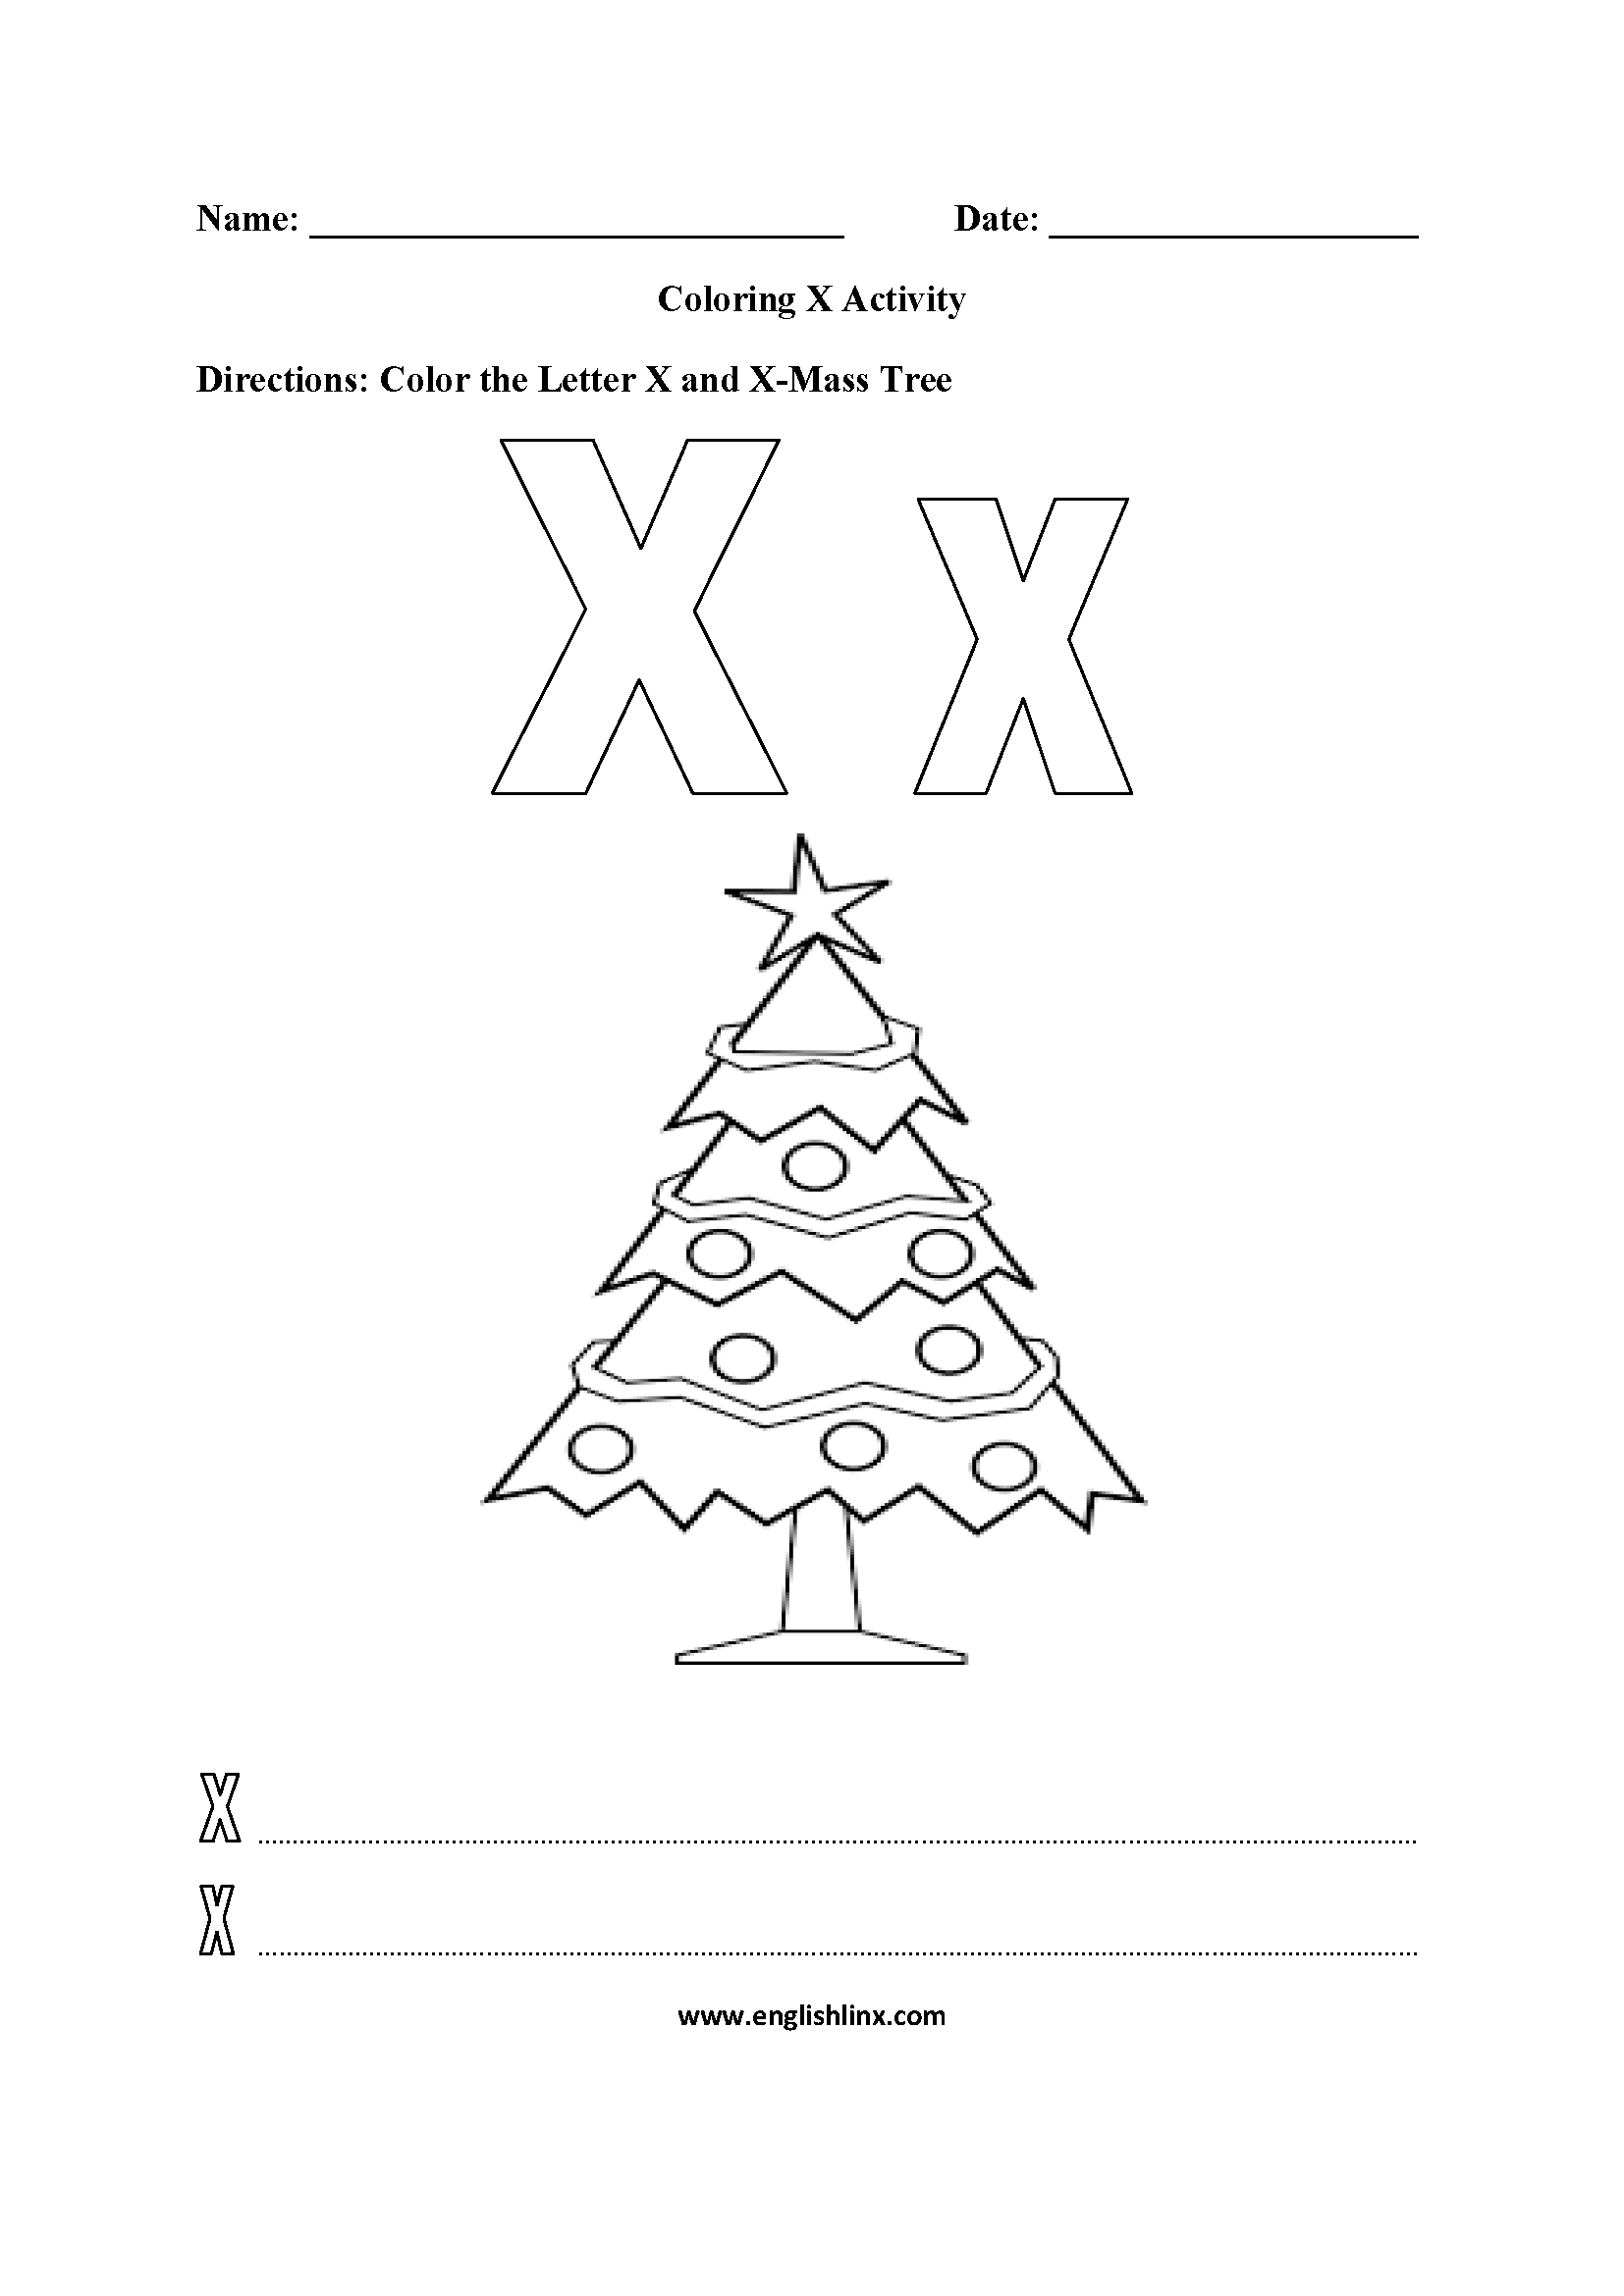 Coloring X Worksheet